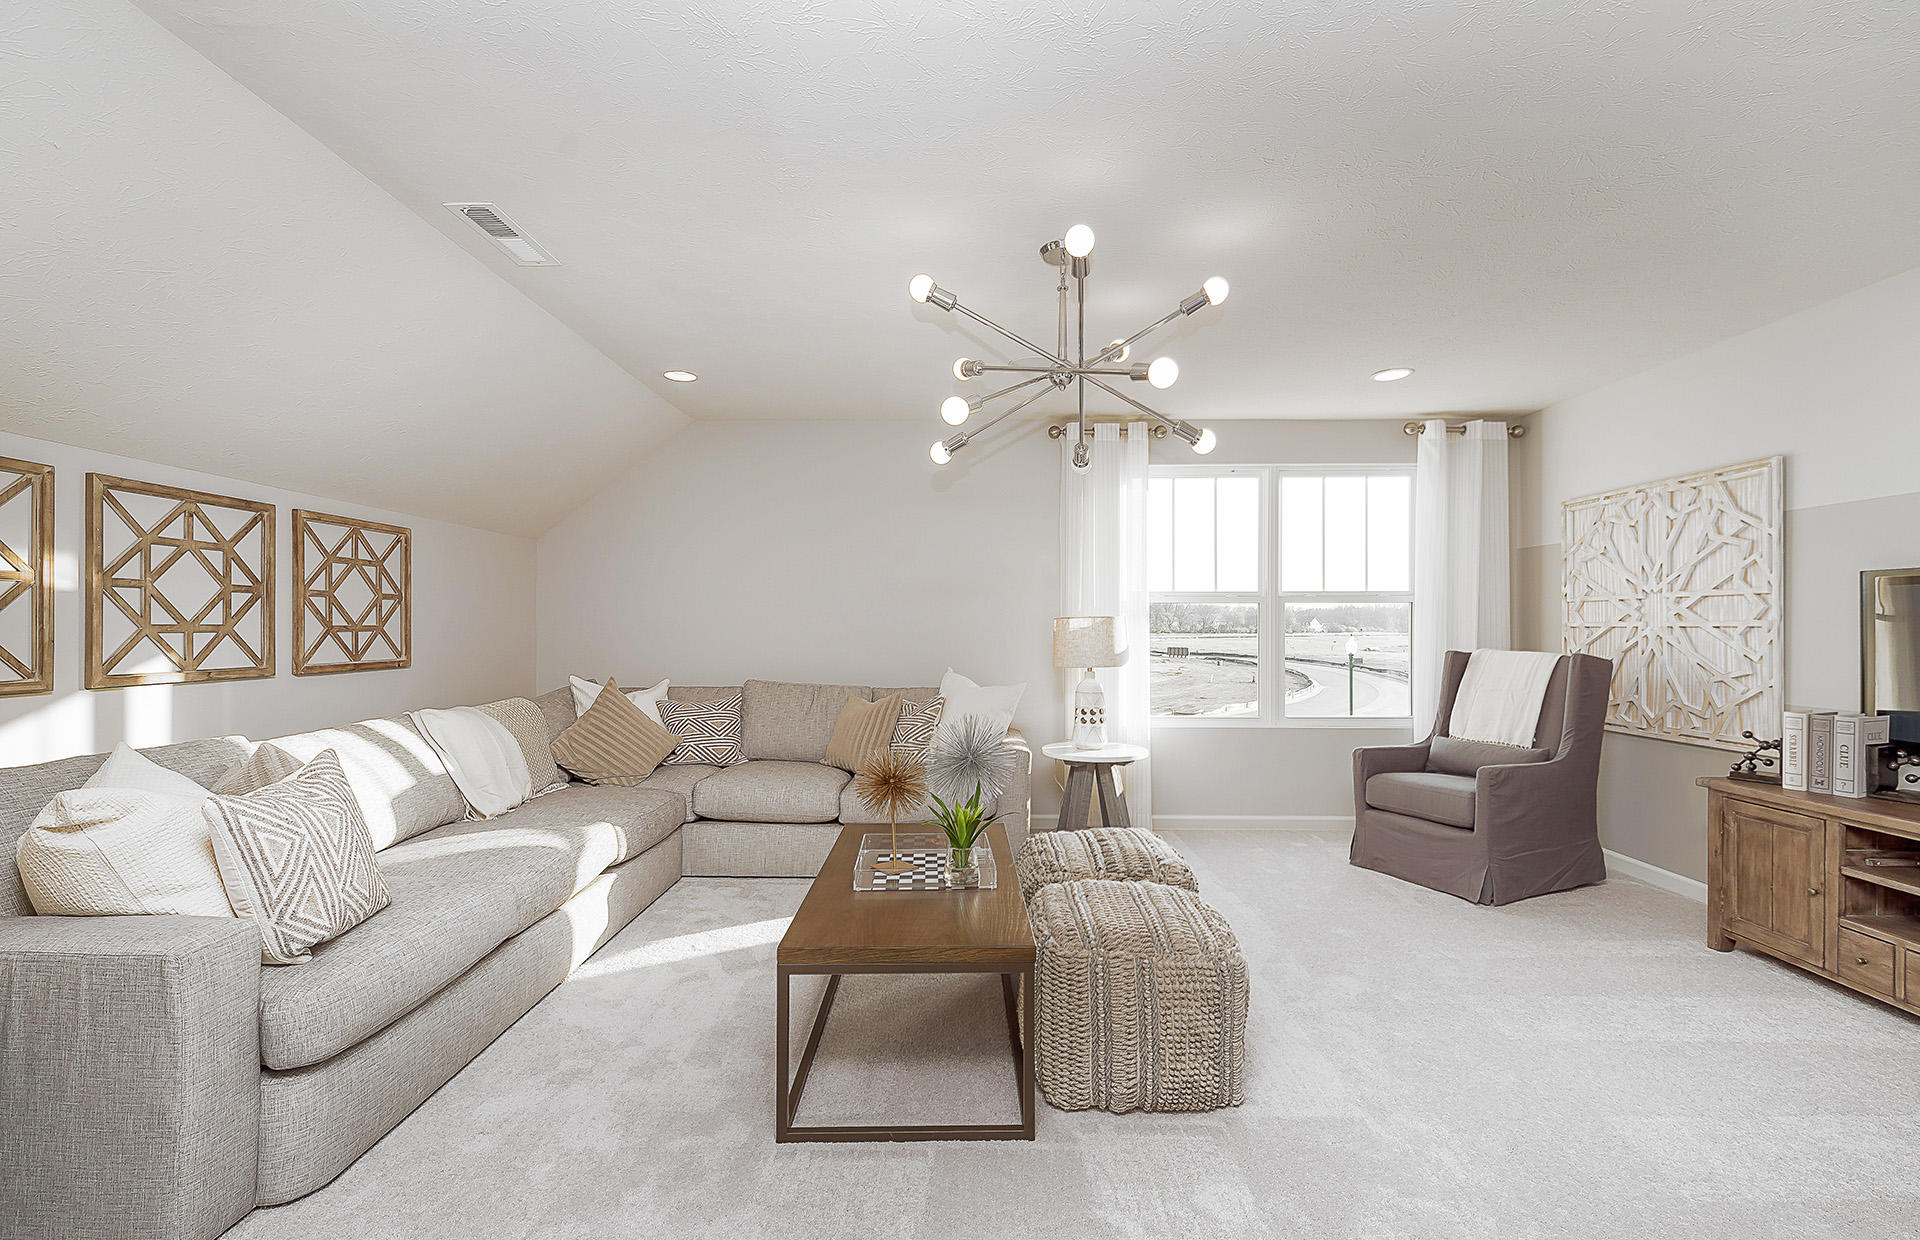 Wood Hollow by Pulte Homes image 8